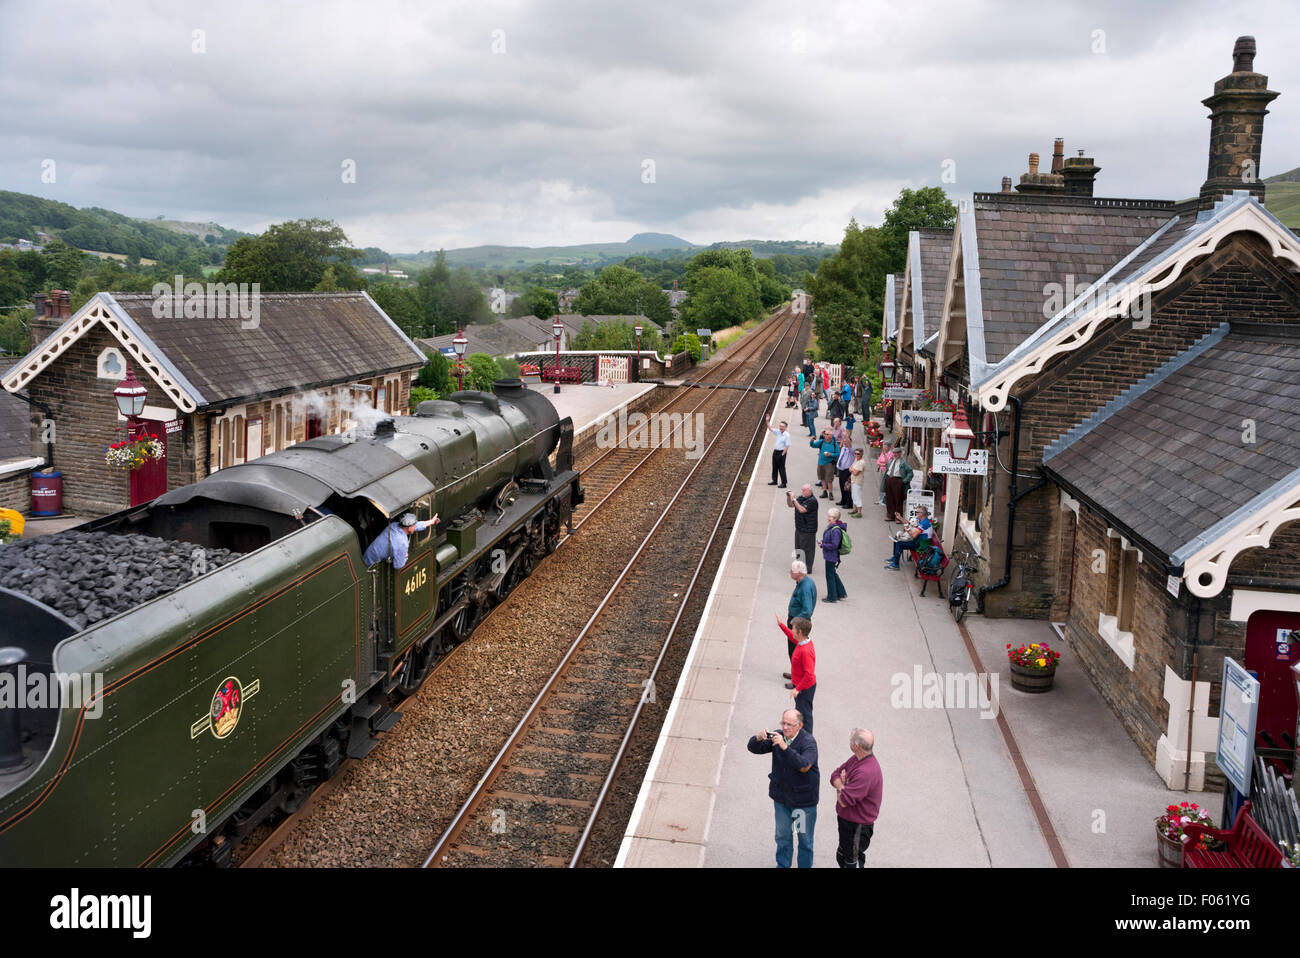 Steam locomotive 'Scots Guardsman' takes The Fellsman special train through Settle Station, Settle, North - Stock Image